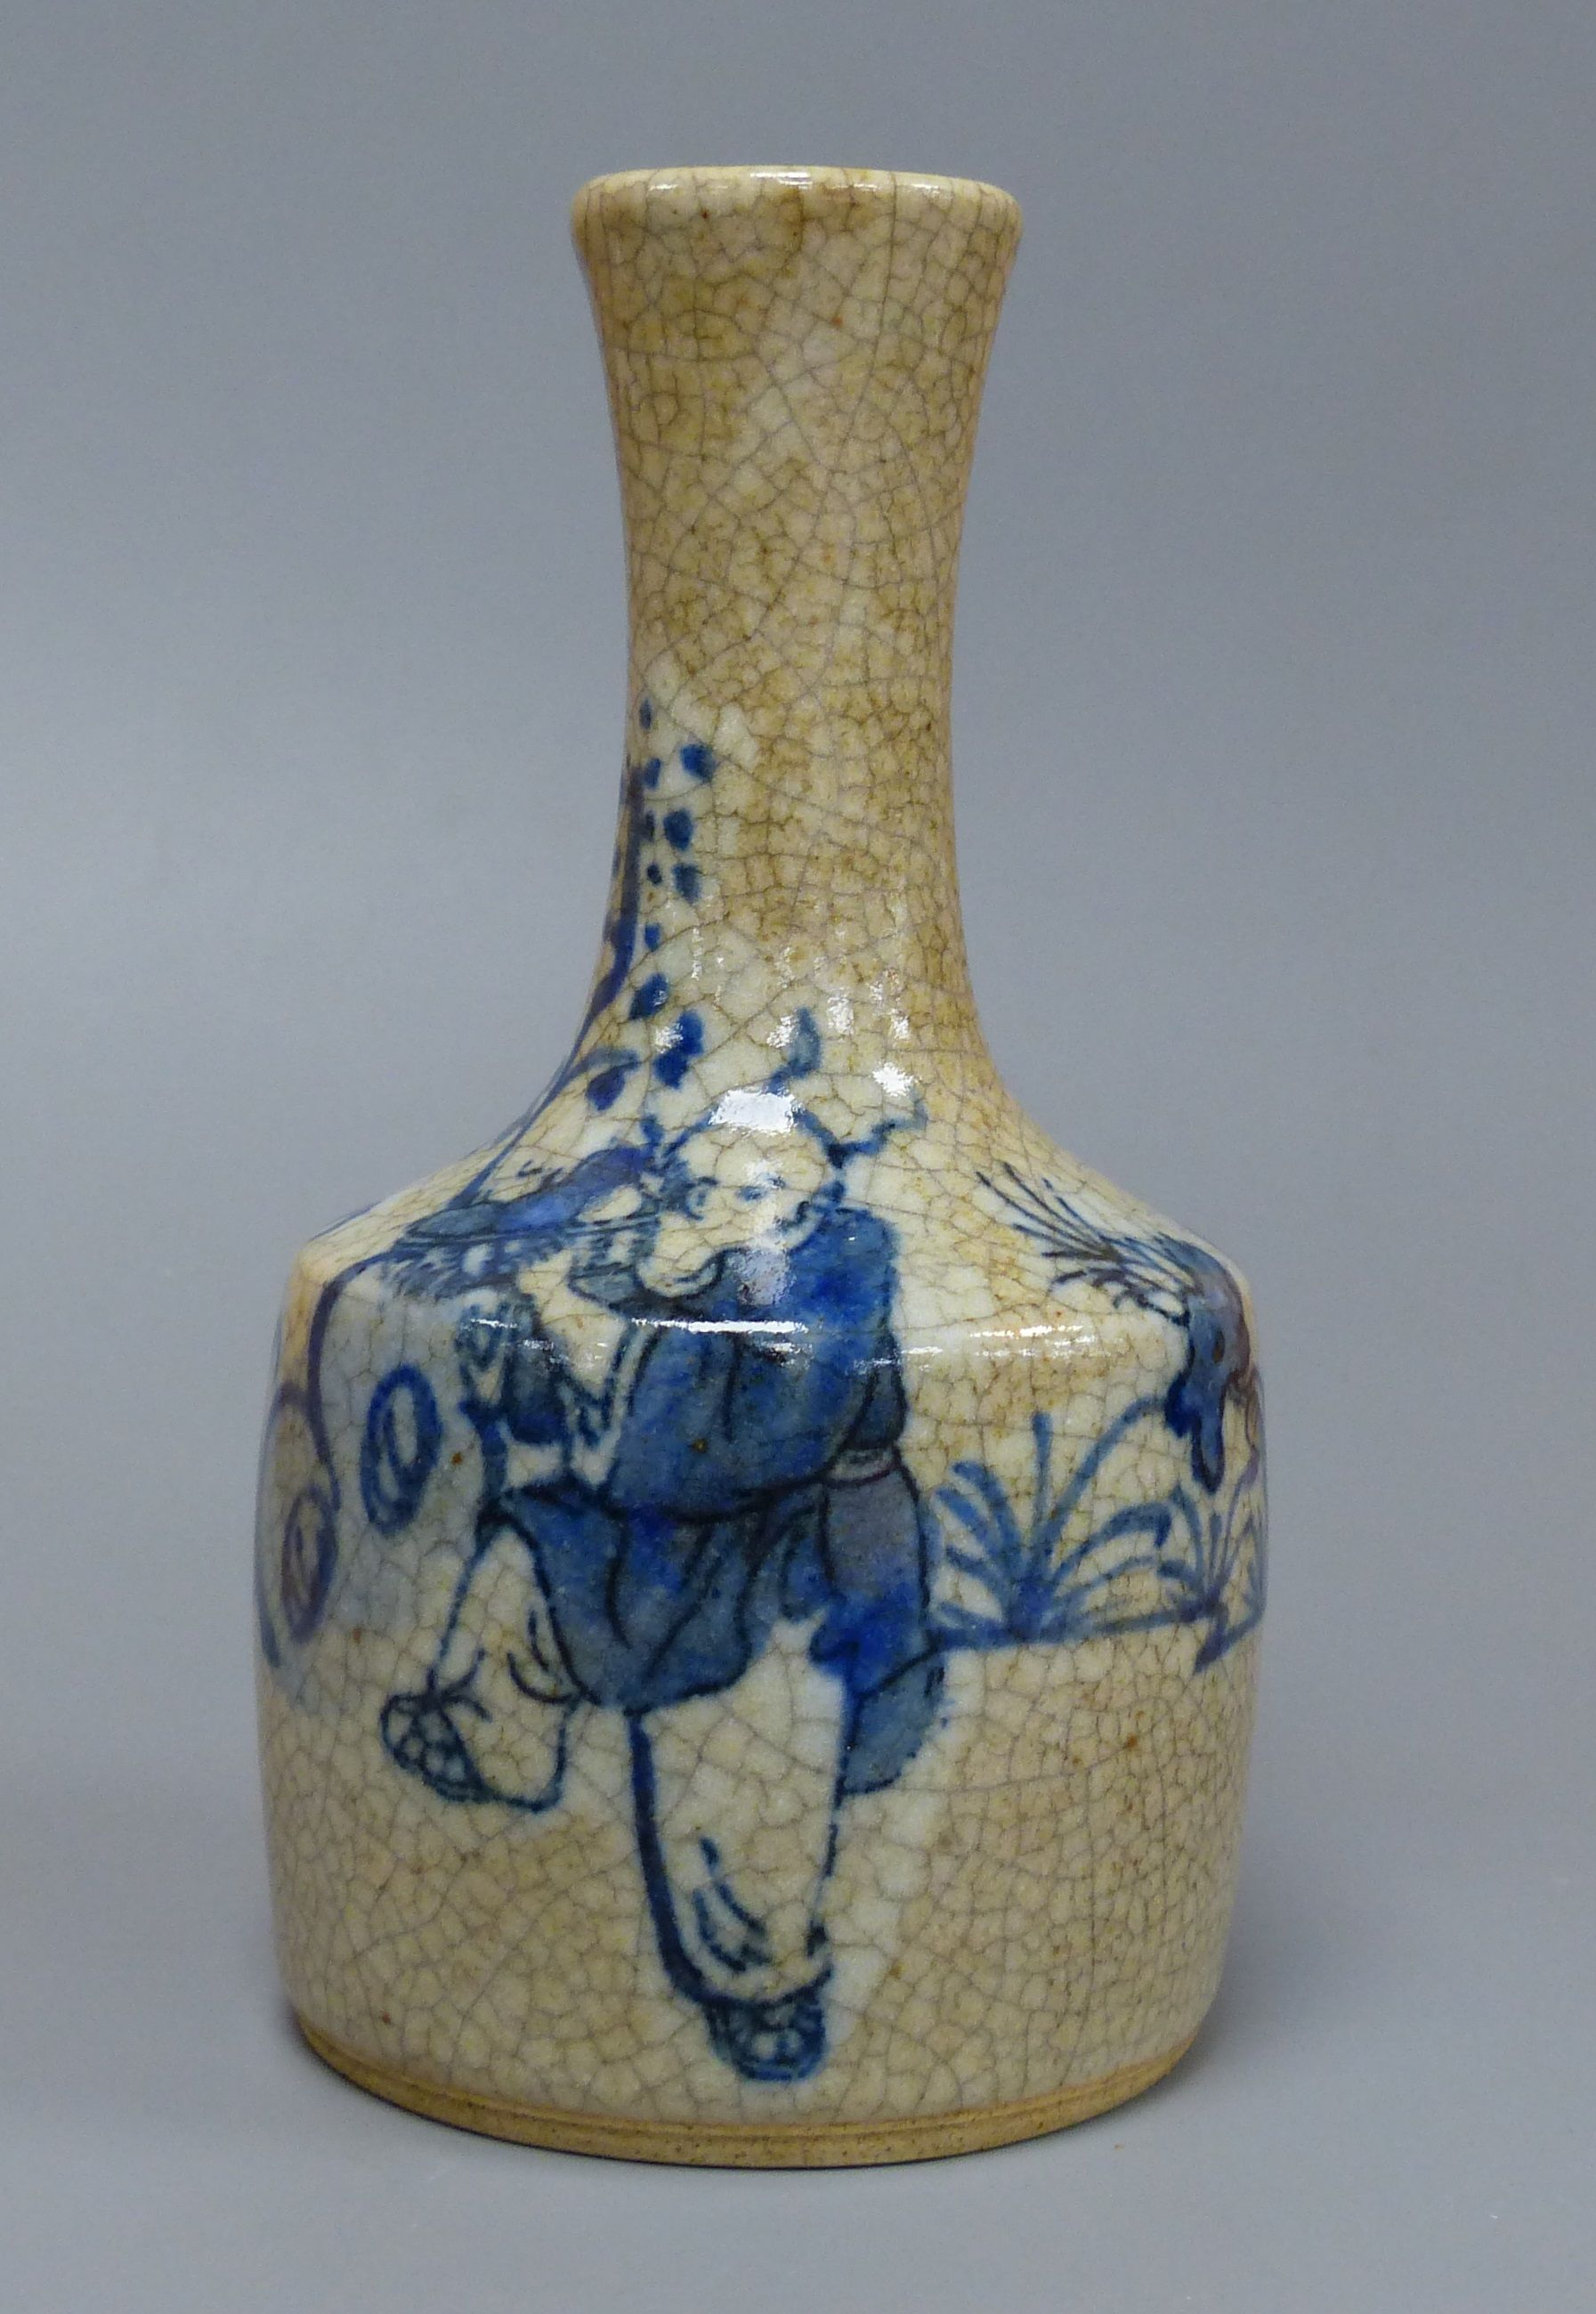 A Chinese blue and white crackle glaze bottle vase, height 15cm